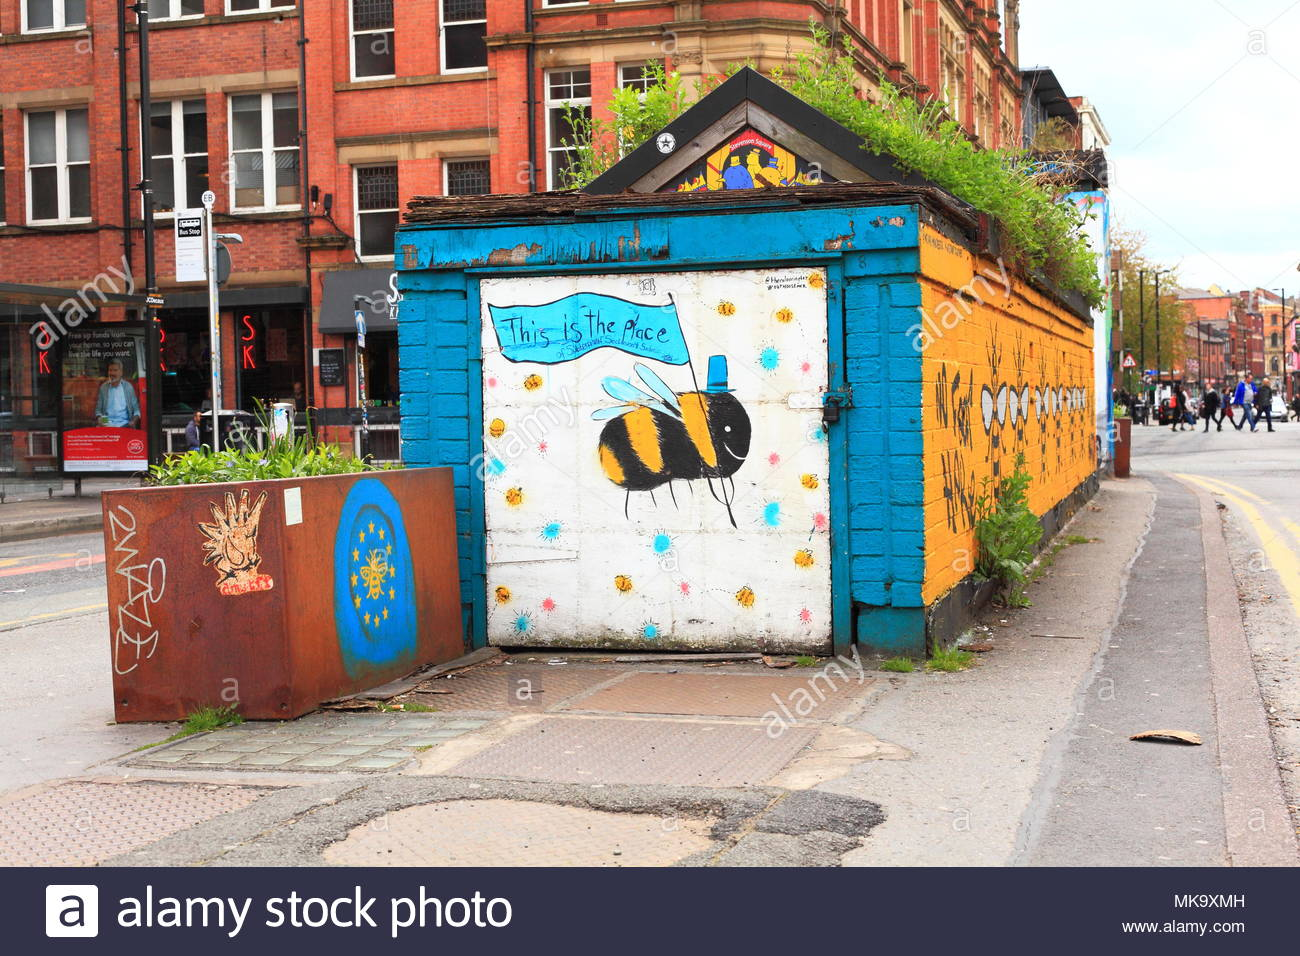 A painting of the Manchester Bee on a blue & yellow building with plants growing on the roof in Manchester City Centre England May 2018 - Stock Image